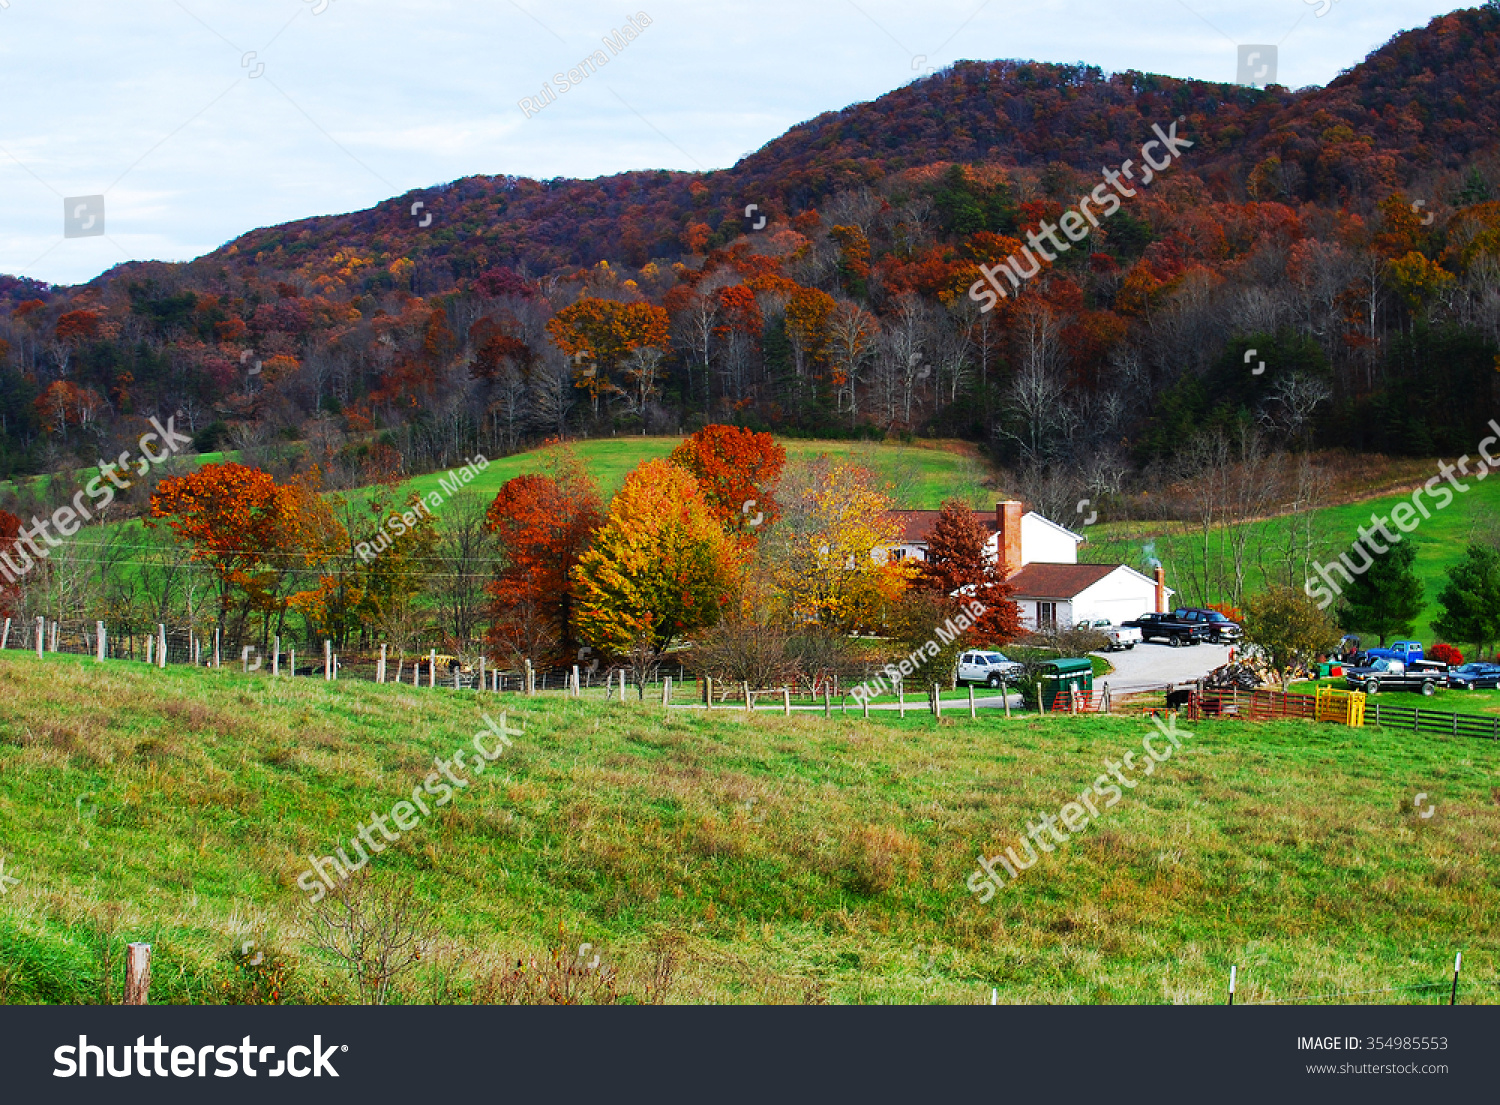 Colorful Fall Trees Catawba Valley Road Stock Photo 354985553 ...